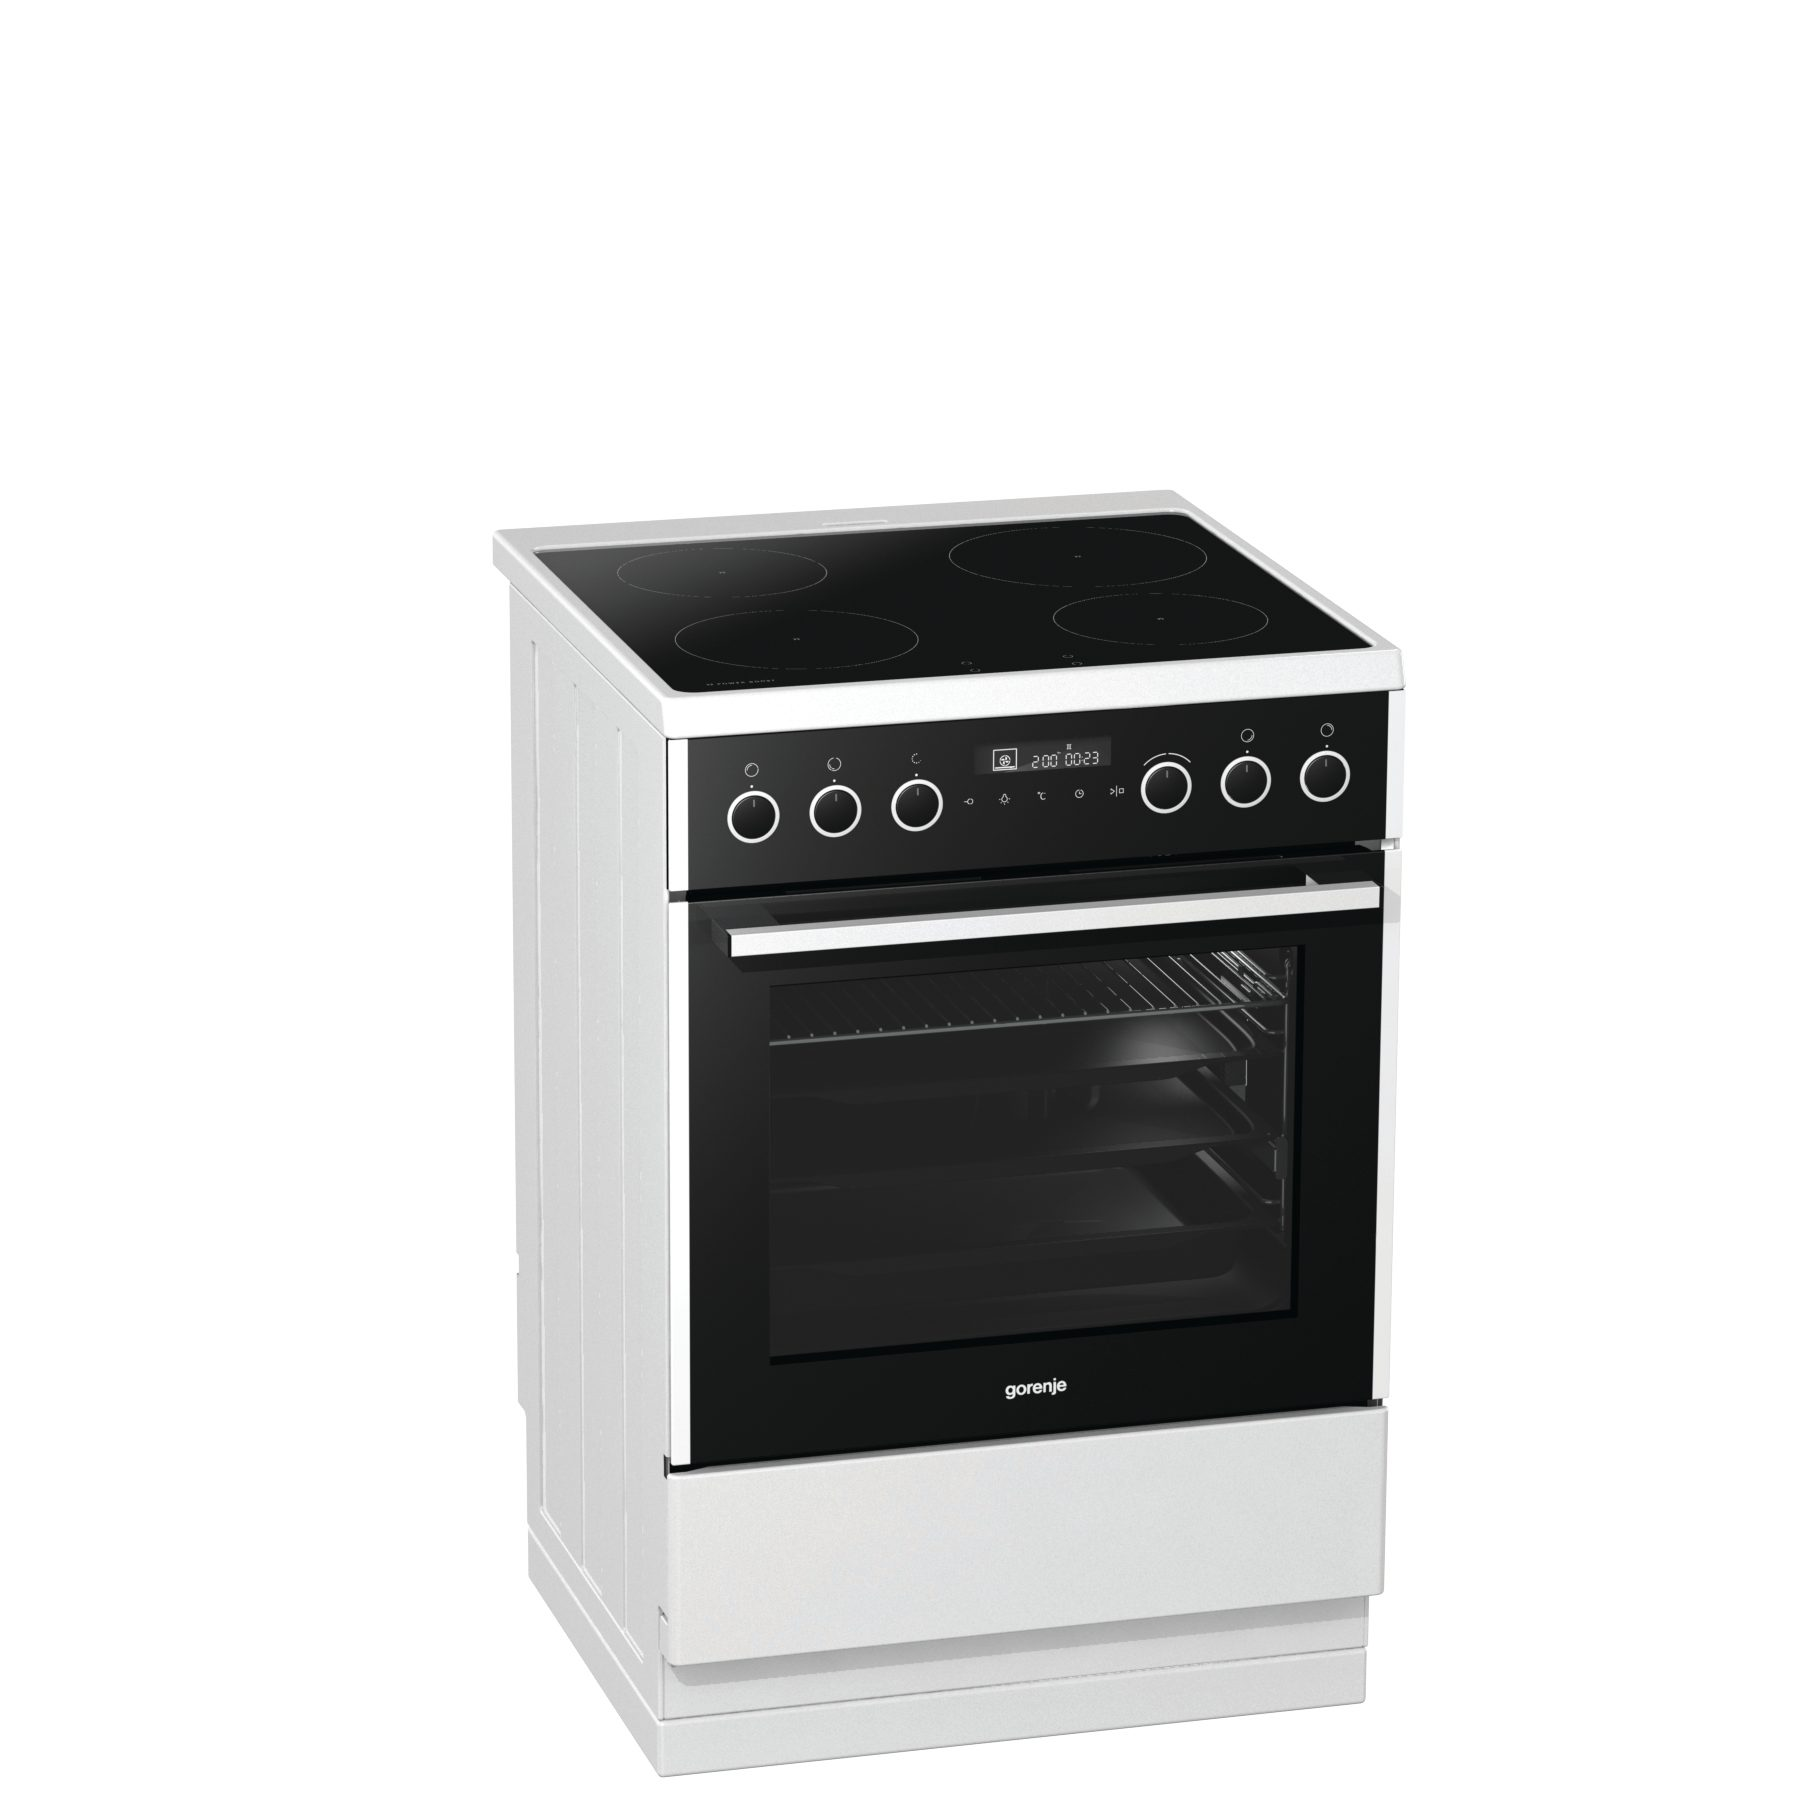 Oven Toaster Hanabishi besides Mitsubishi 1 5hp Inverter Air Conditioner Srk 13yns besides Moulinex Coffee Makers Noumea FG 2112 PID3284 in addition Shower Heater besides Product. on induction cooker thailand